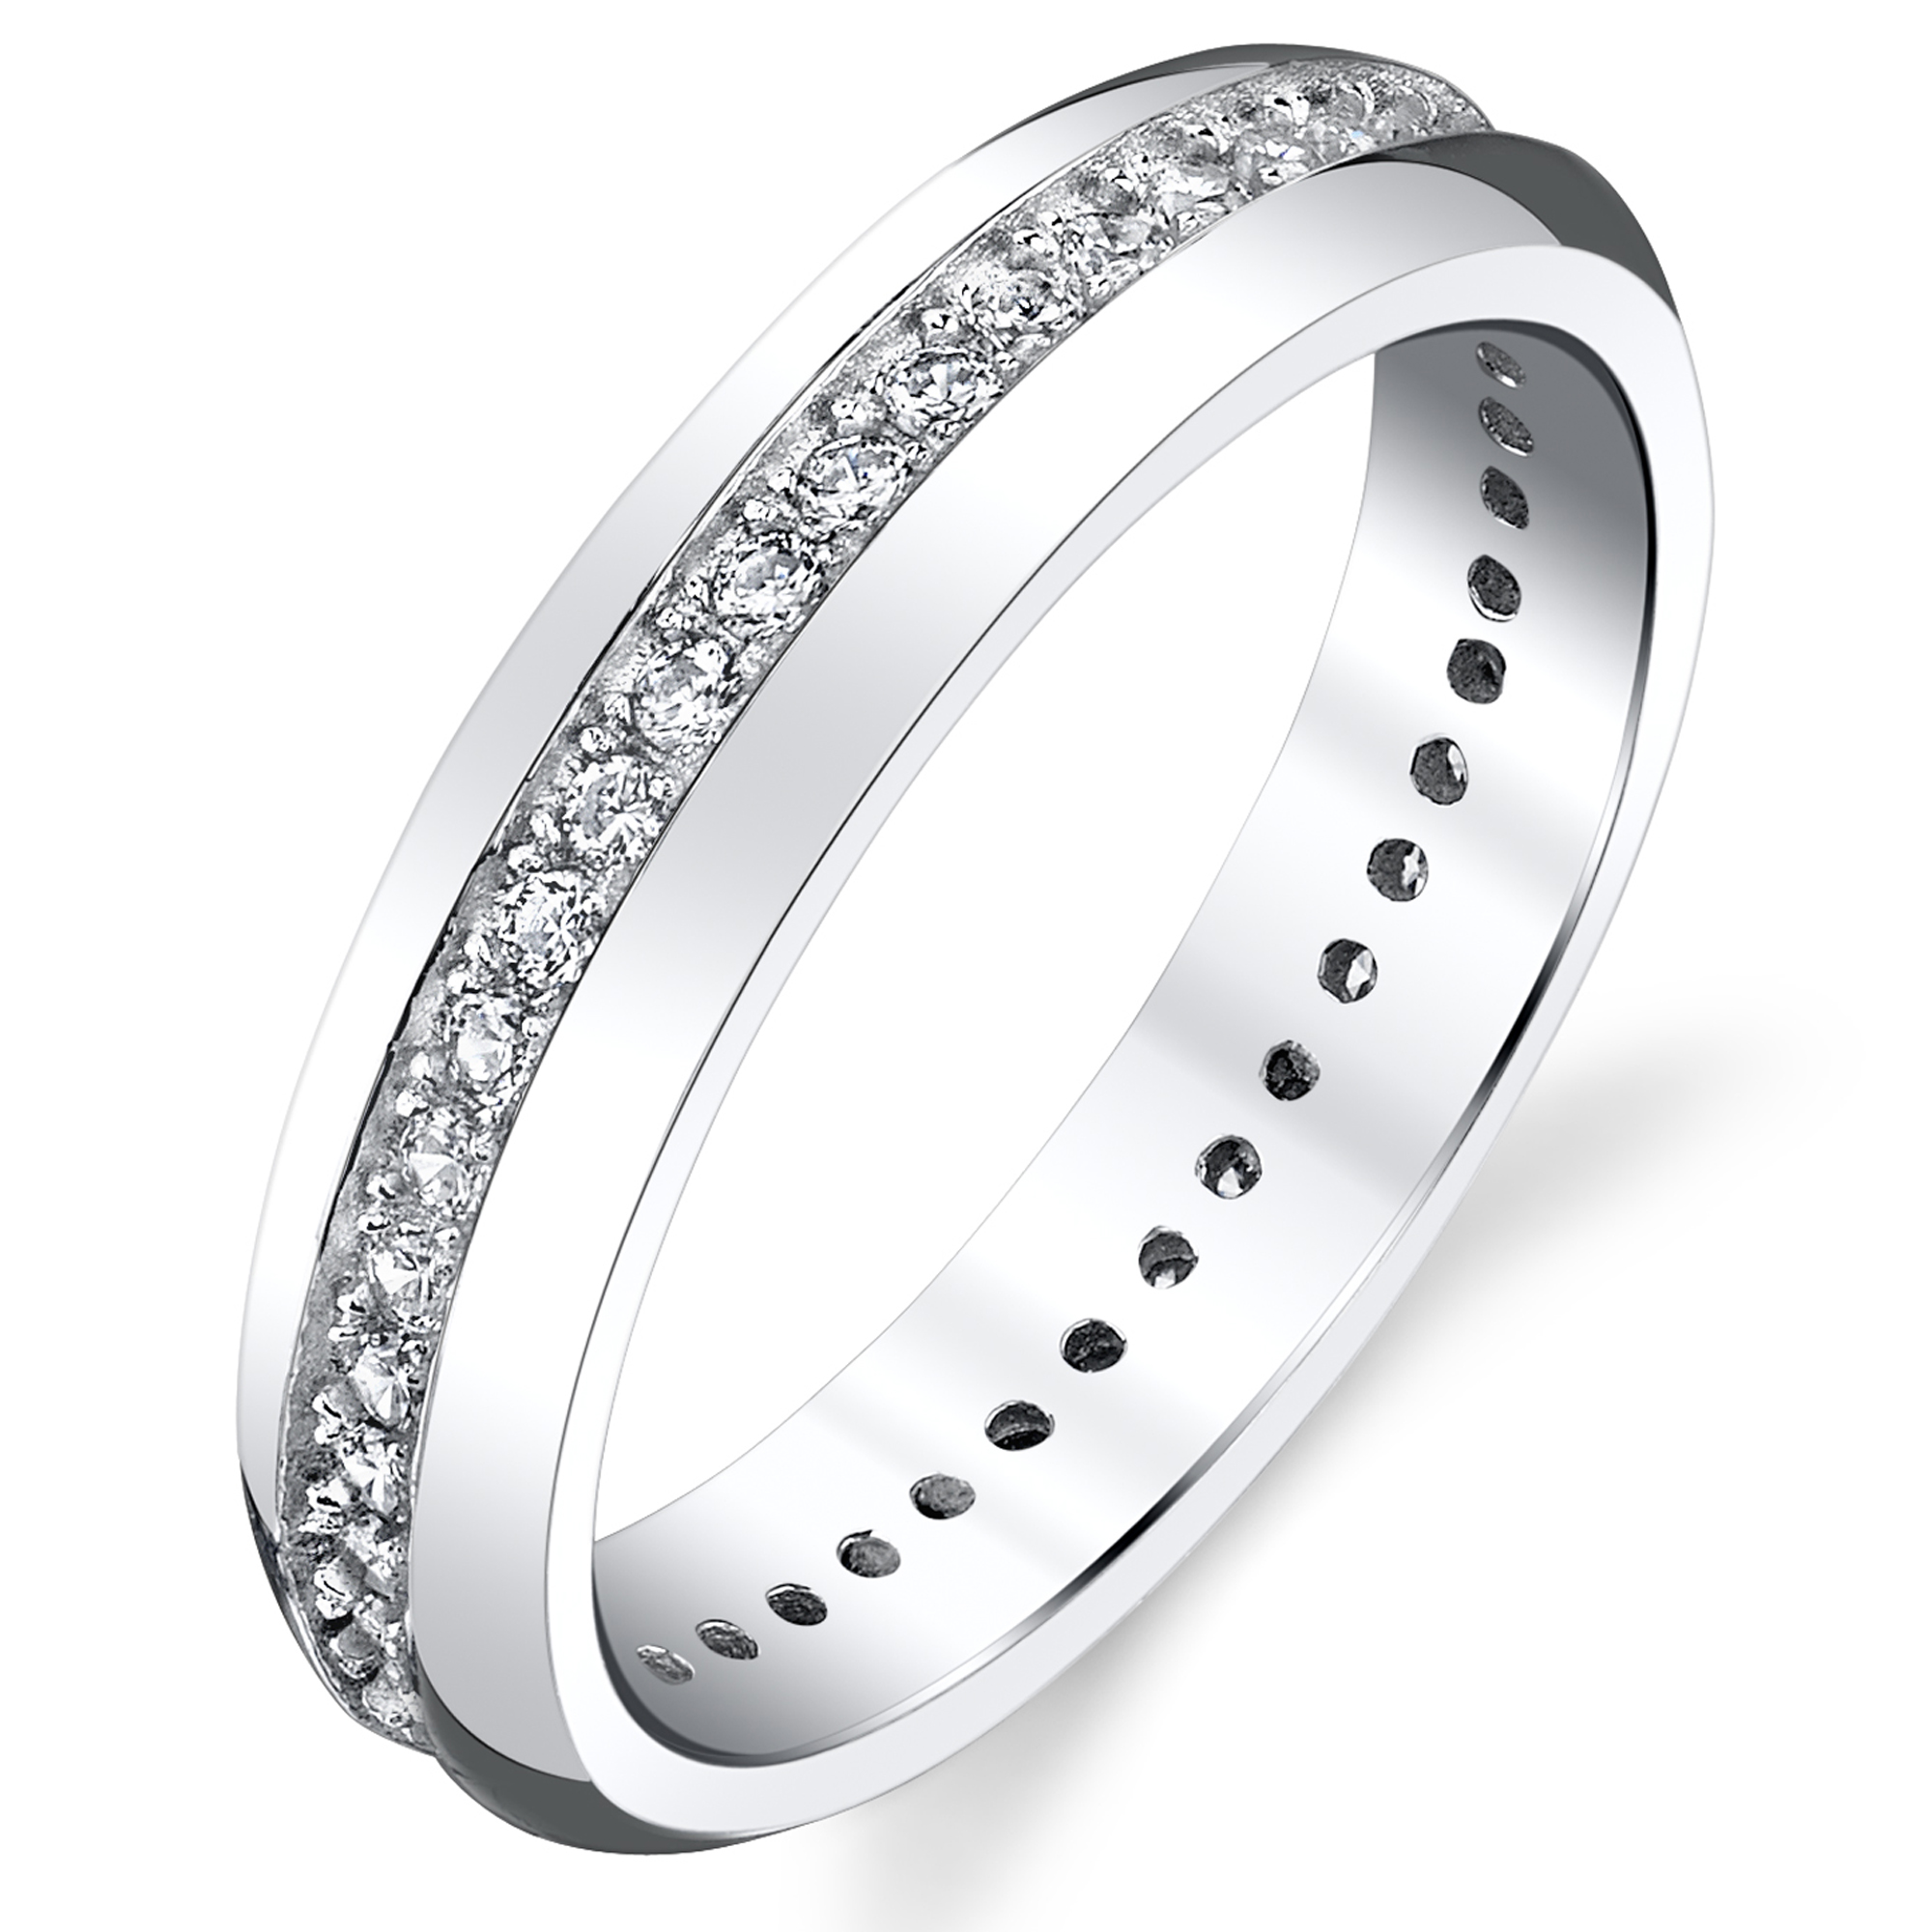 4mm Sterling Silver 925 Women's Eternity Ring Engagement Wedding Band With Round Cut Cubic Zirconia